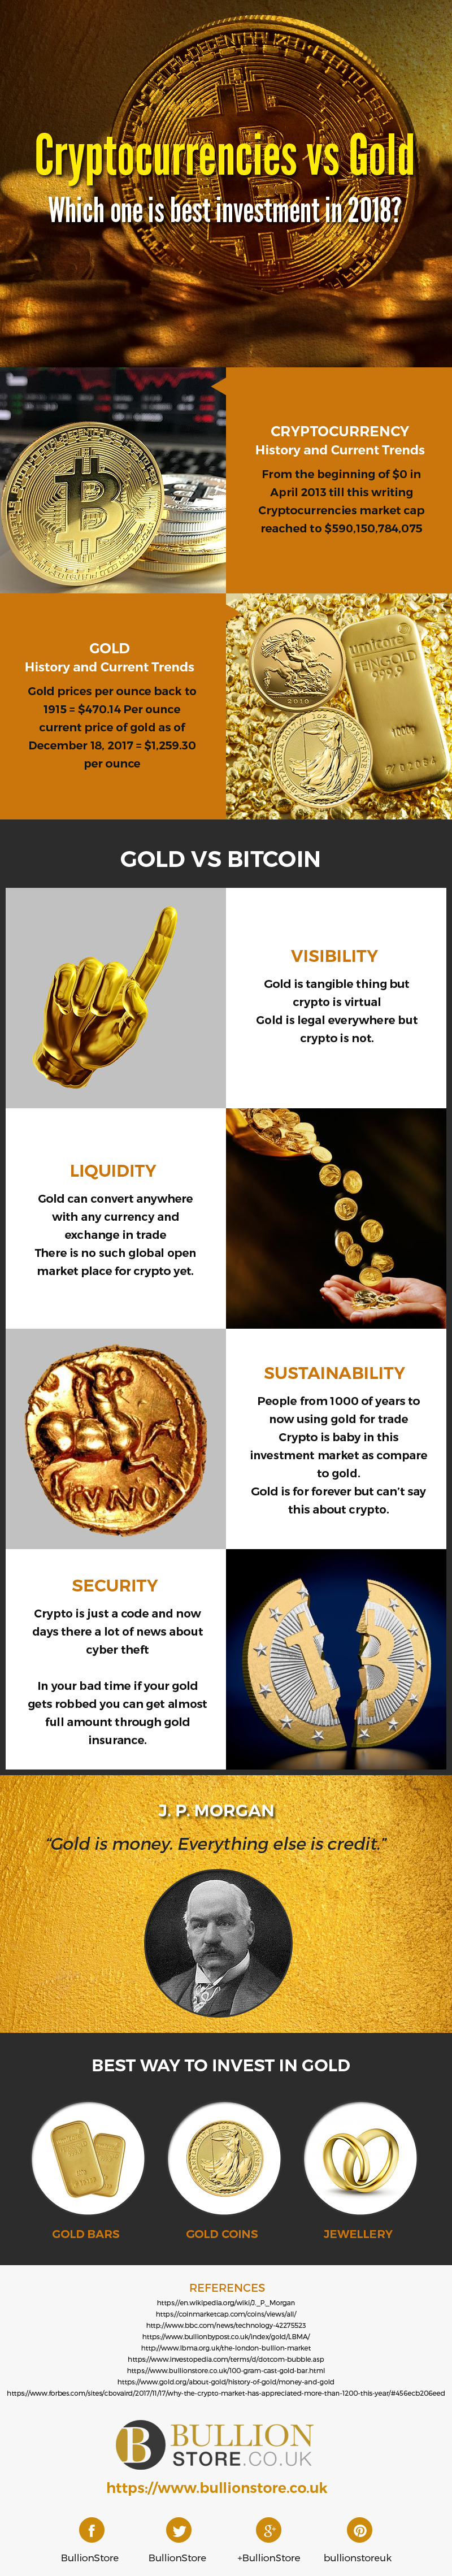 Cryptocurrency vs. Gold [Infographic]